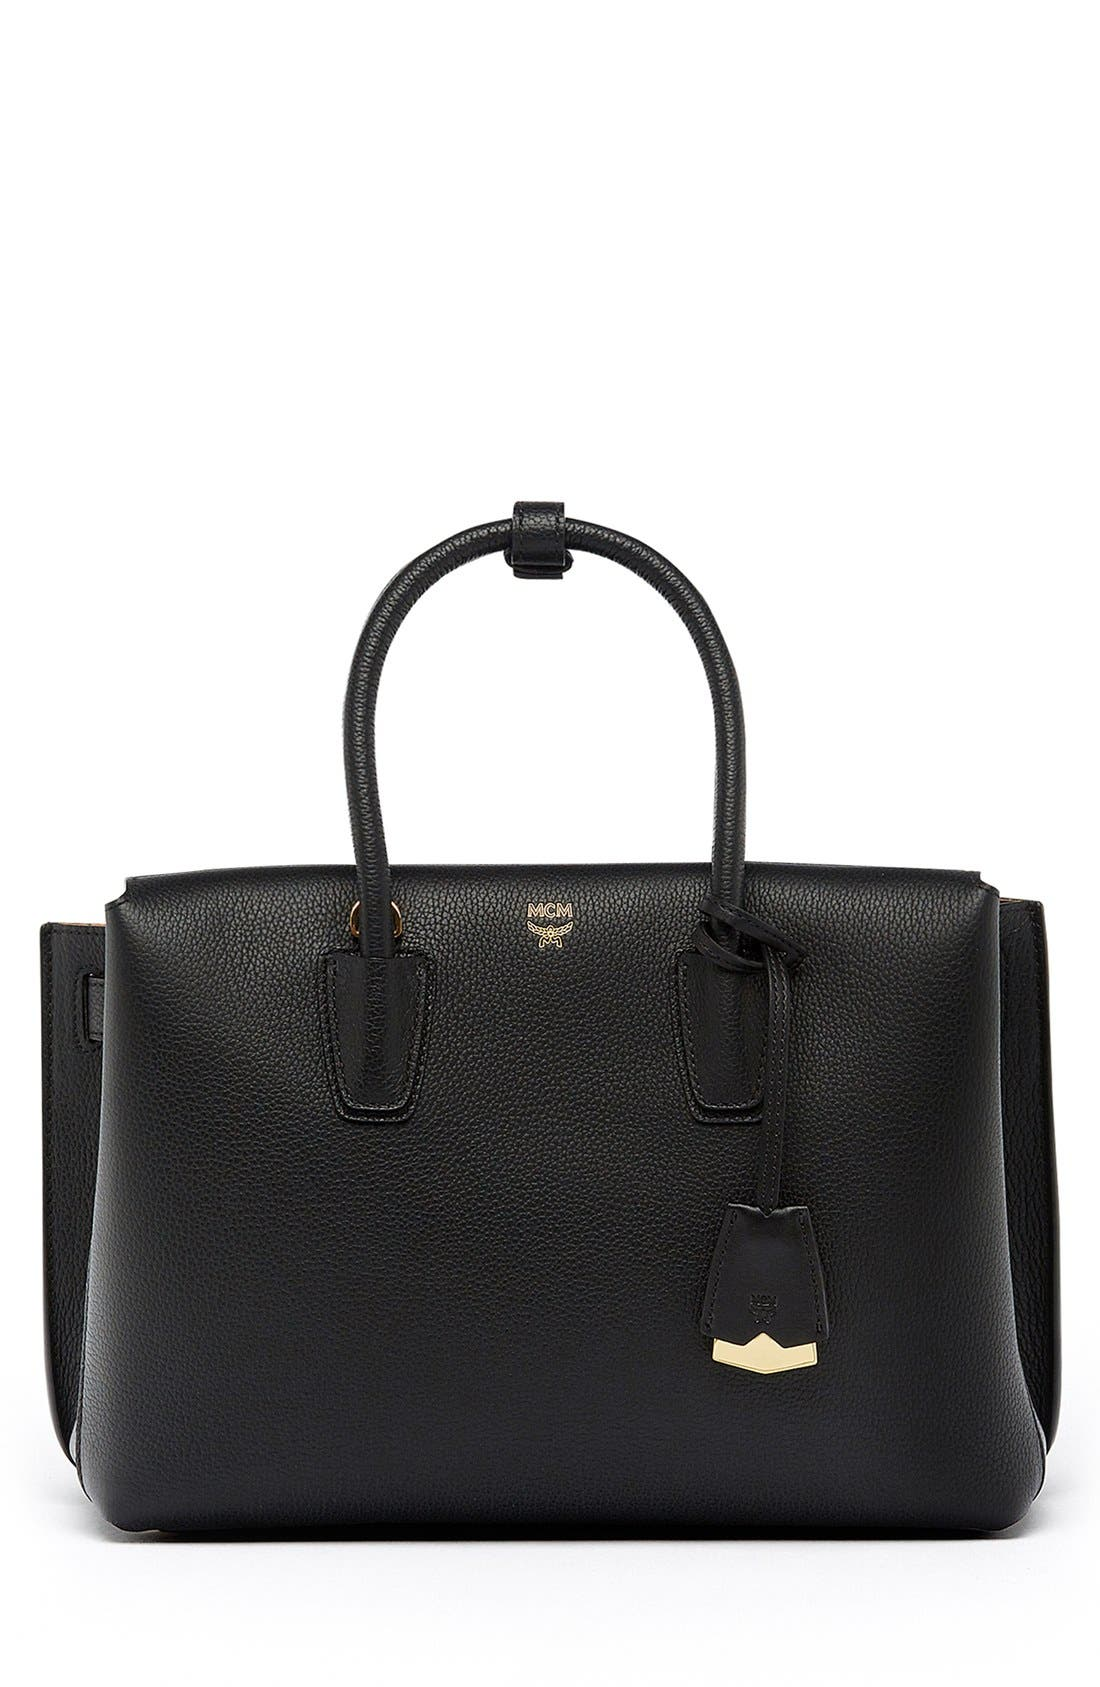 MCM 'Medium Milla' Leather Tote